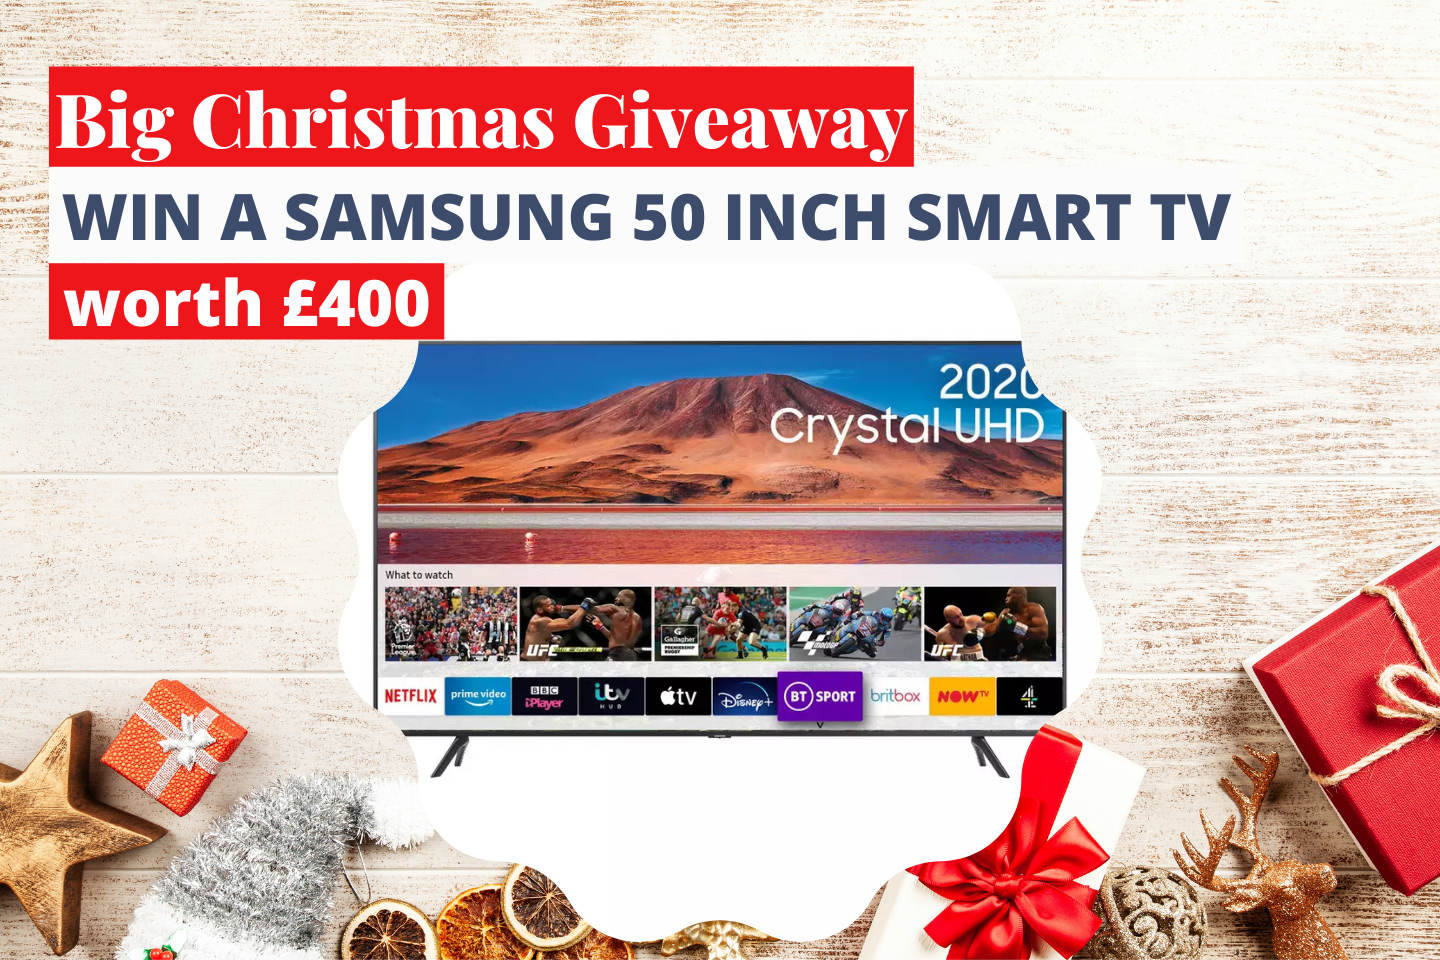 Win A Samsung 50 Inch Smart TV